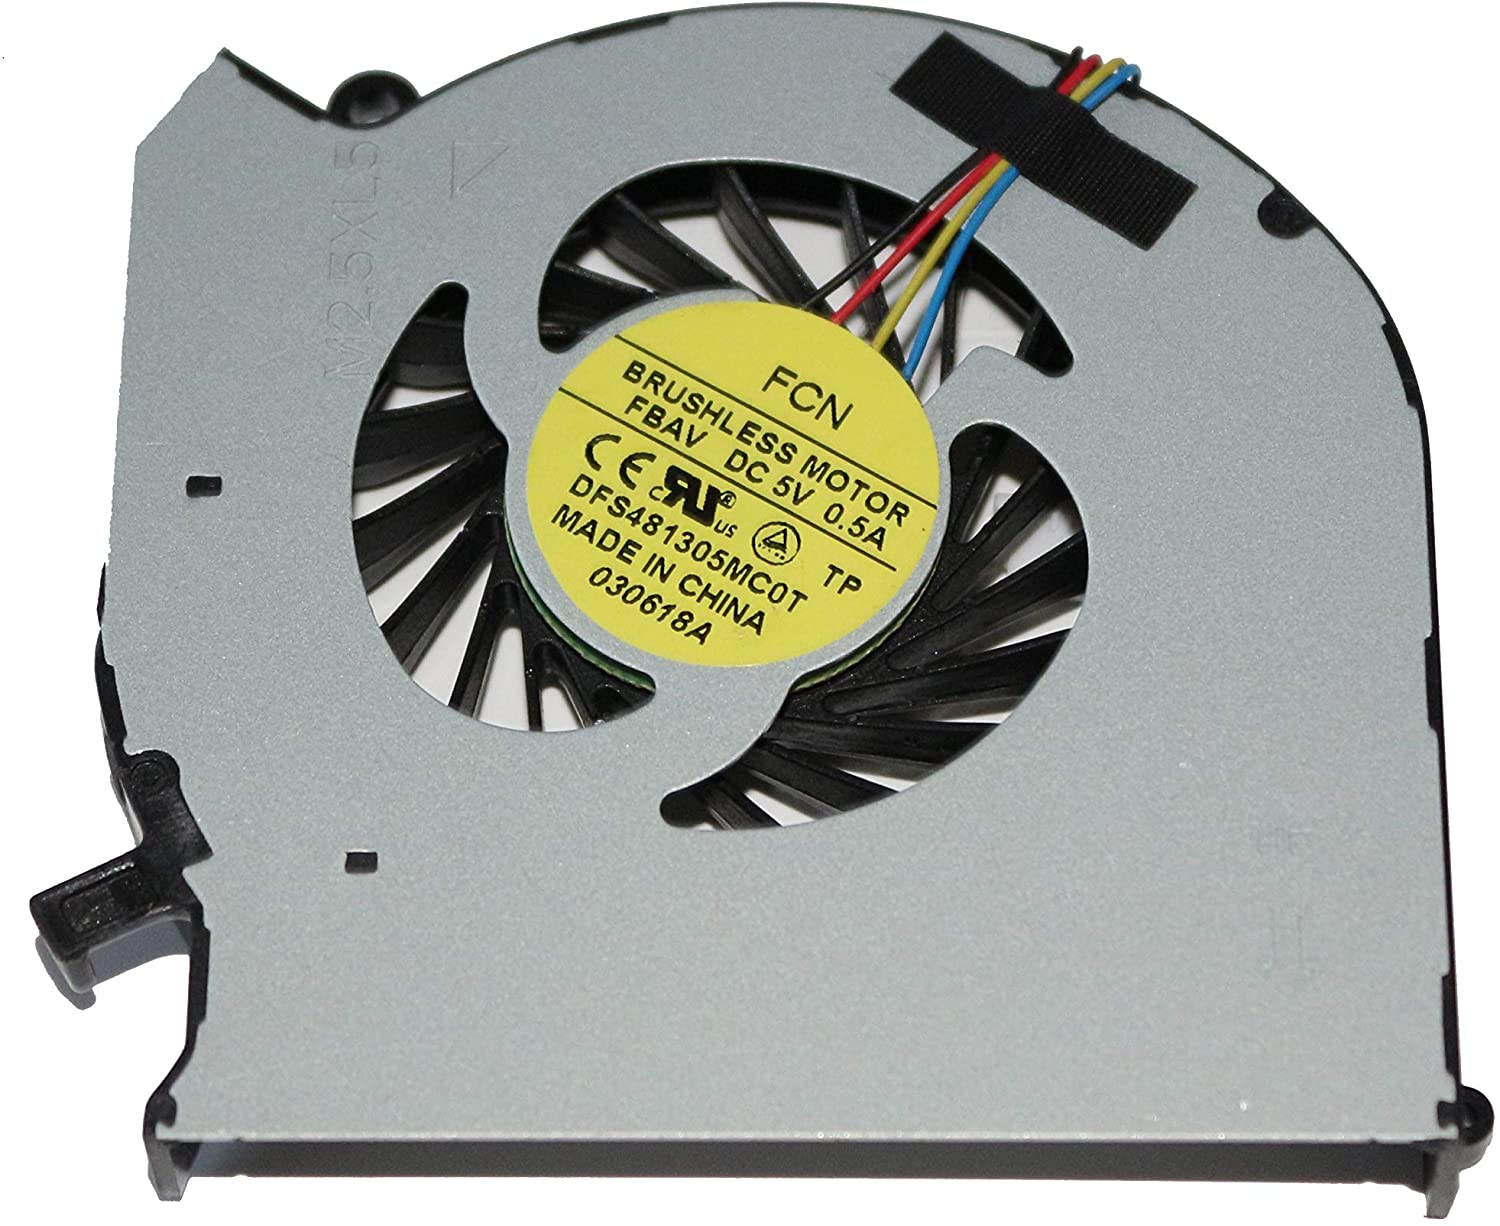 GIVWIZD Laptop Replacement CPU Cooling Fan for HP Envy dv6-7300se dv6-7300sl dv6-7300sp dv6-7300ss dv6-7300st dv6-7300sx dv6-7301AX